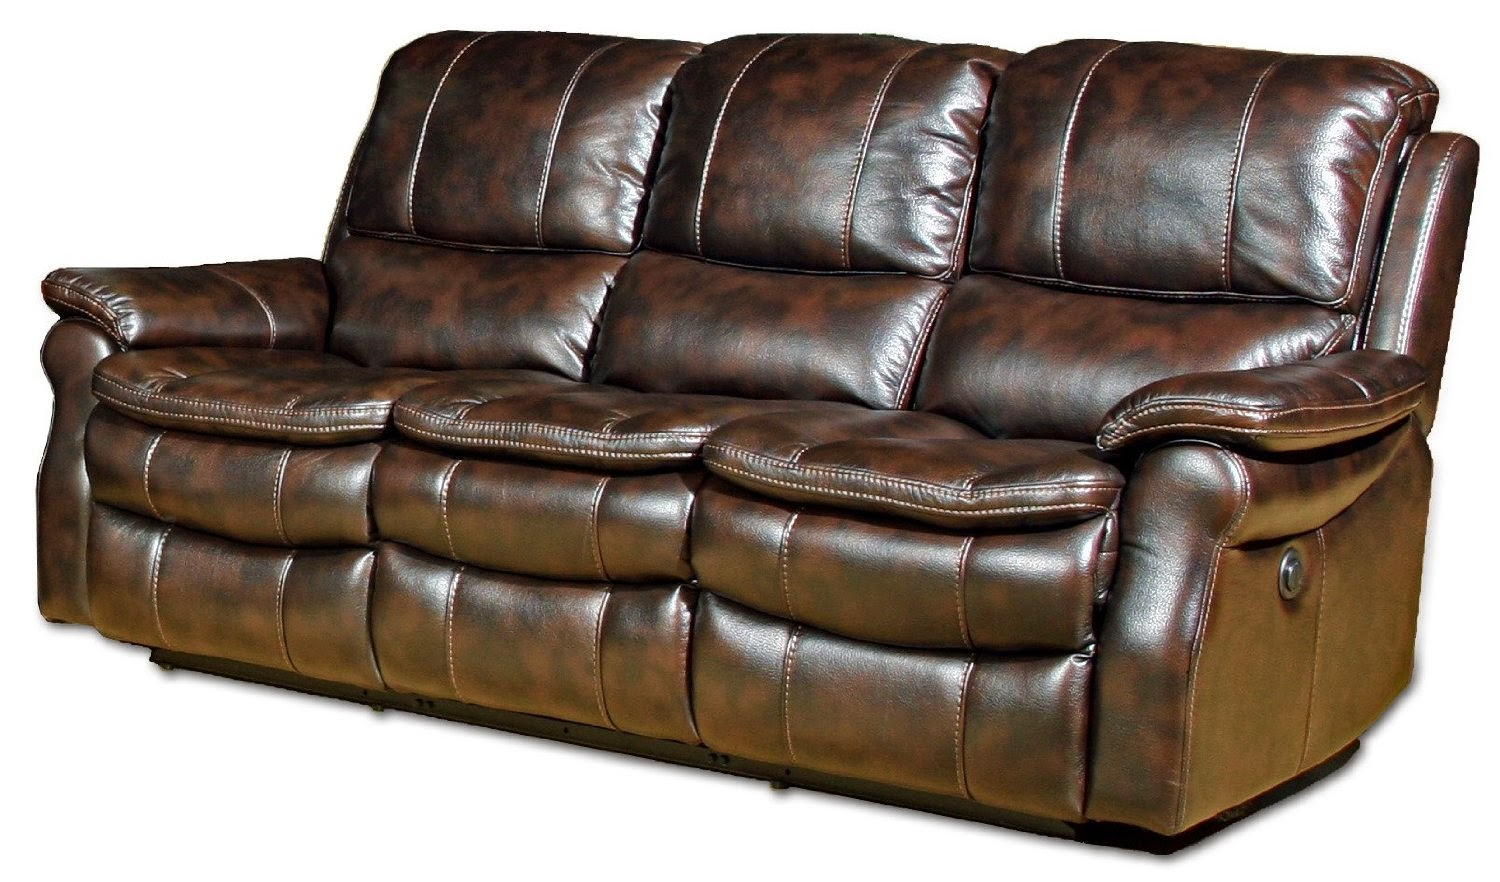 Reclining sofa loveseat and chair sets seth genuine leather power reclining sofa Leather sofa and loveseat recliner